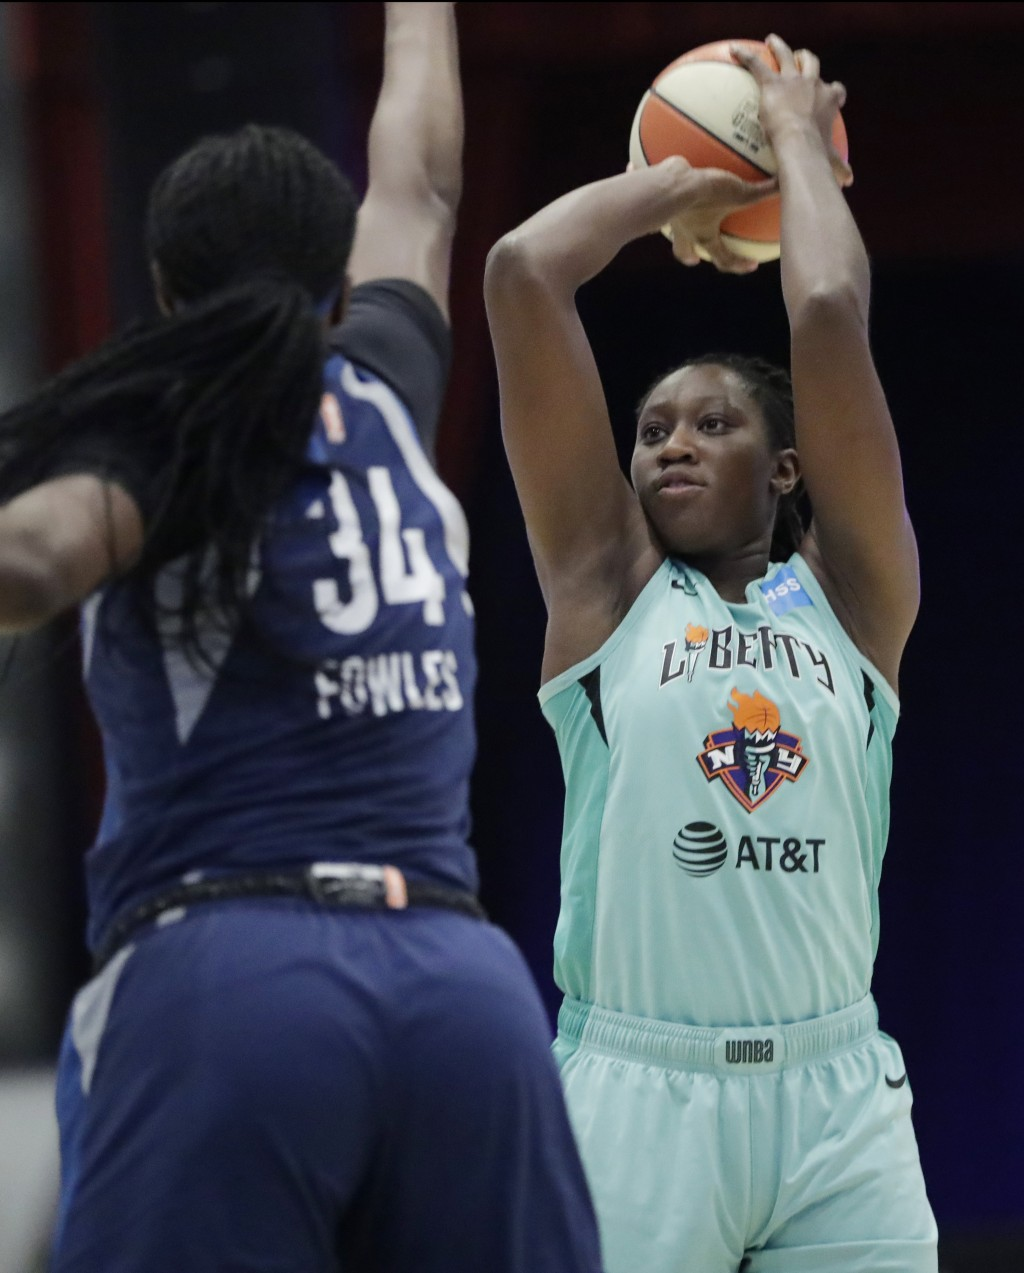 FILE - In this Aug. 13, 2019, file photo, New York Liberty center Tina Charles shoots as Minnesota Lynx center Sylvia Fowles (34) defends during the f...